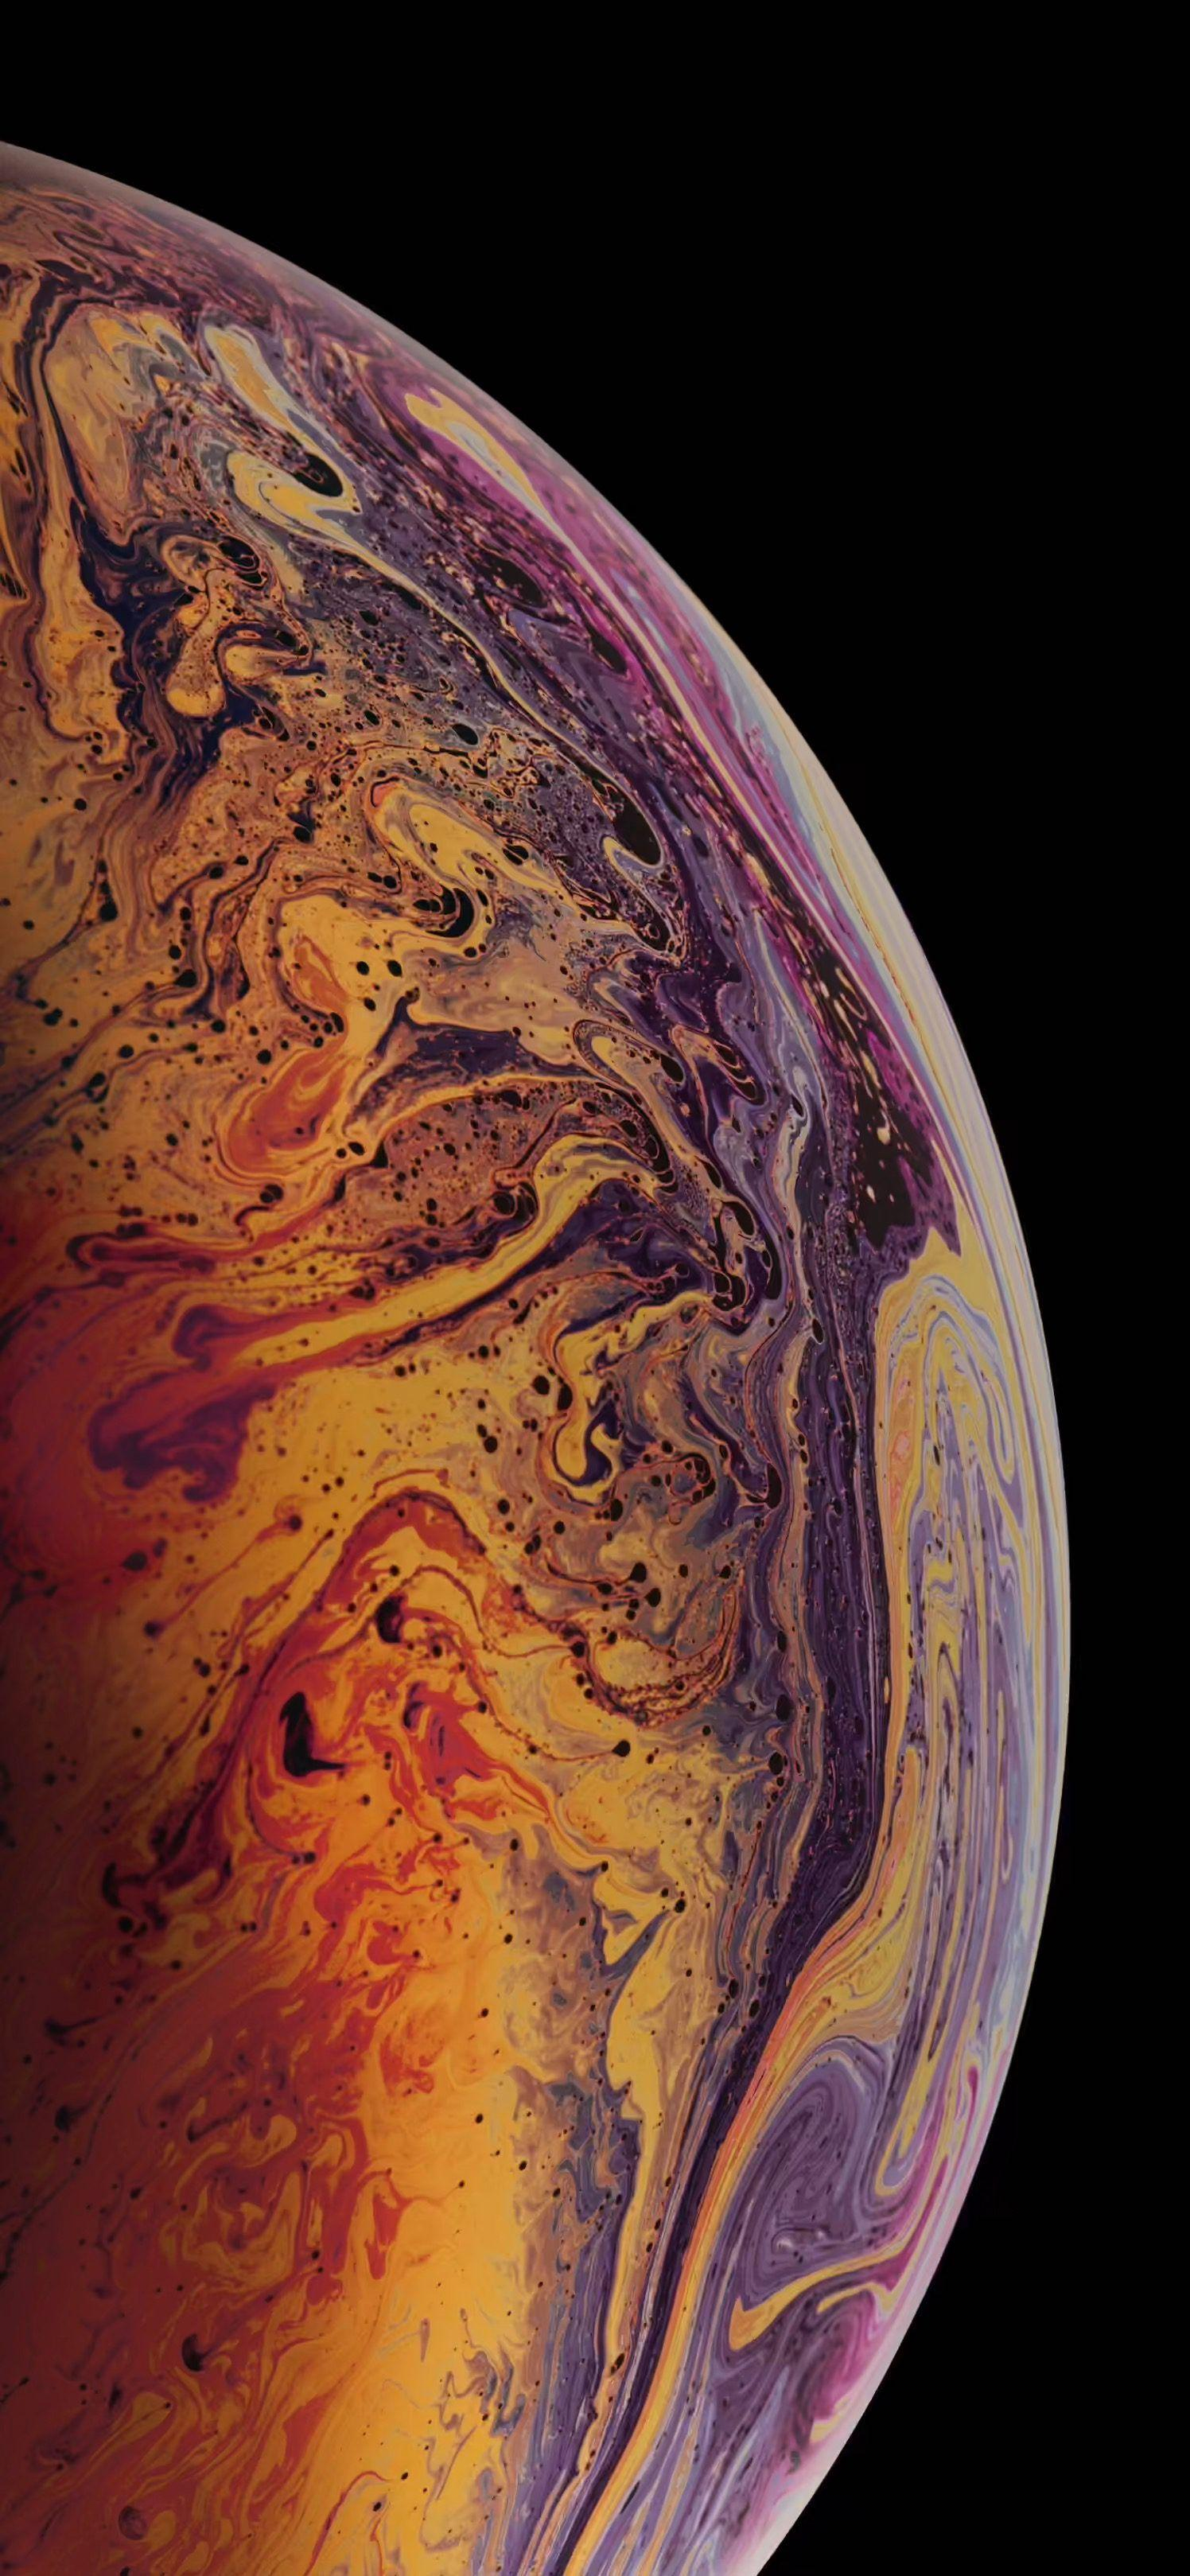 Made this wallpaper for my iphone xs max based off the wallpaper i. iPhone XS 4k Wallpapers - Wallpaper Cave